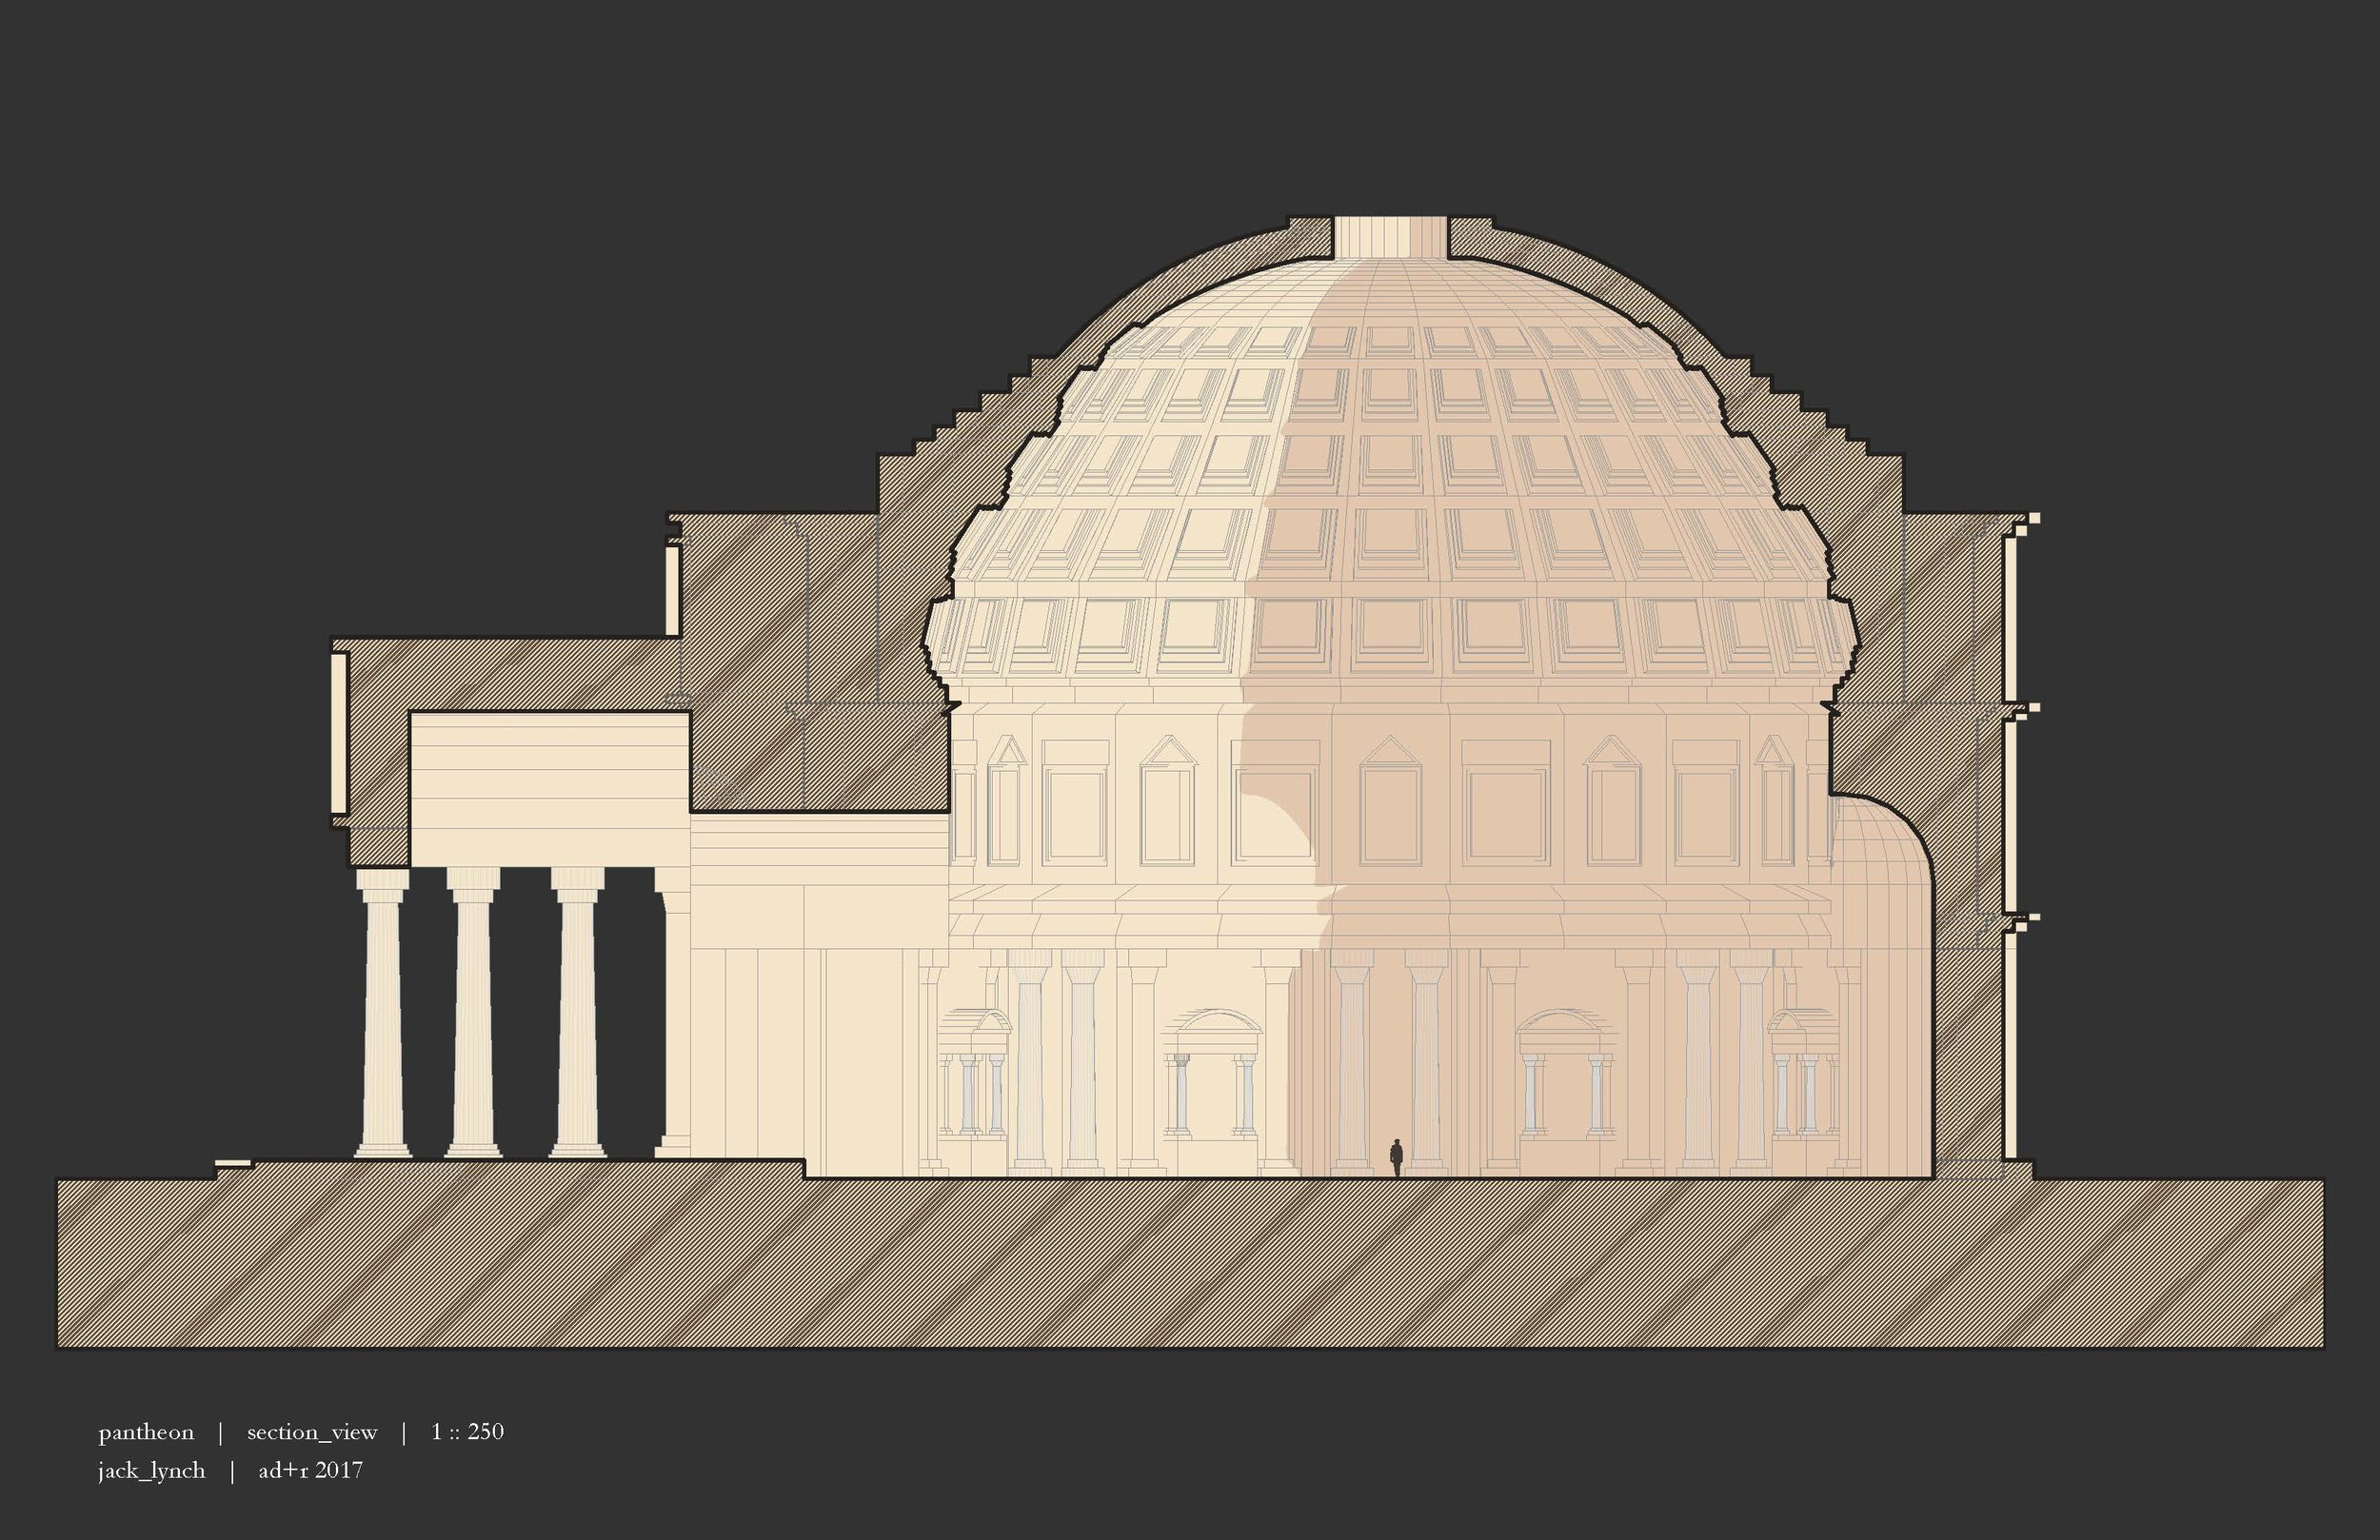 pantheon_orthographic_section_jwl.jpg